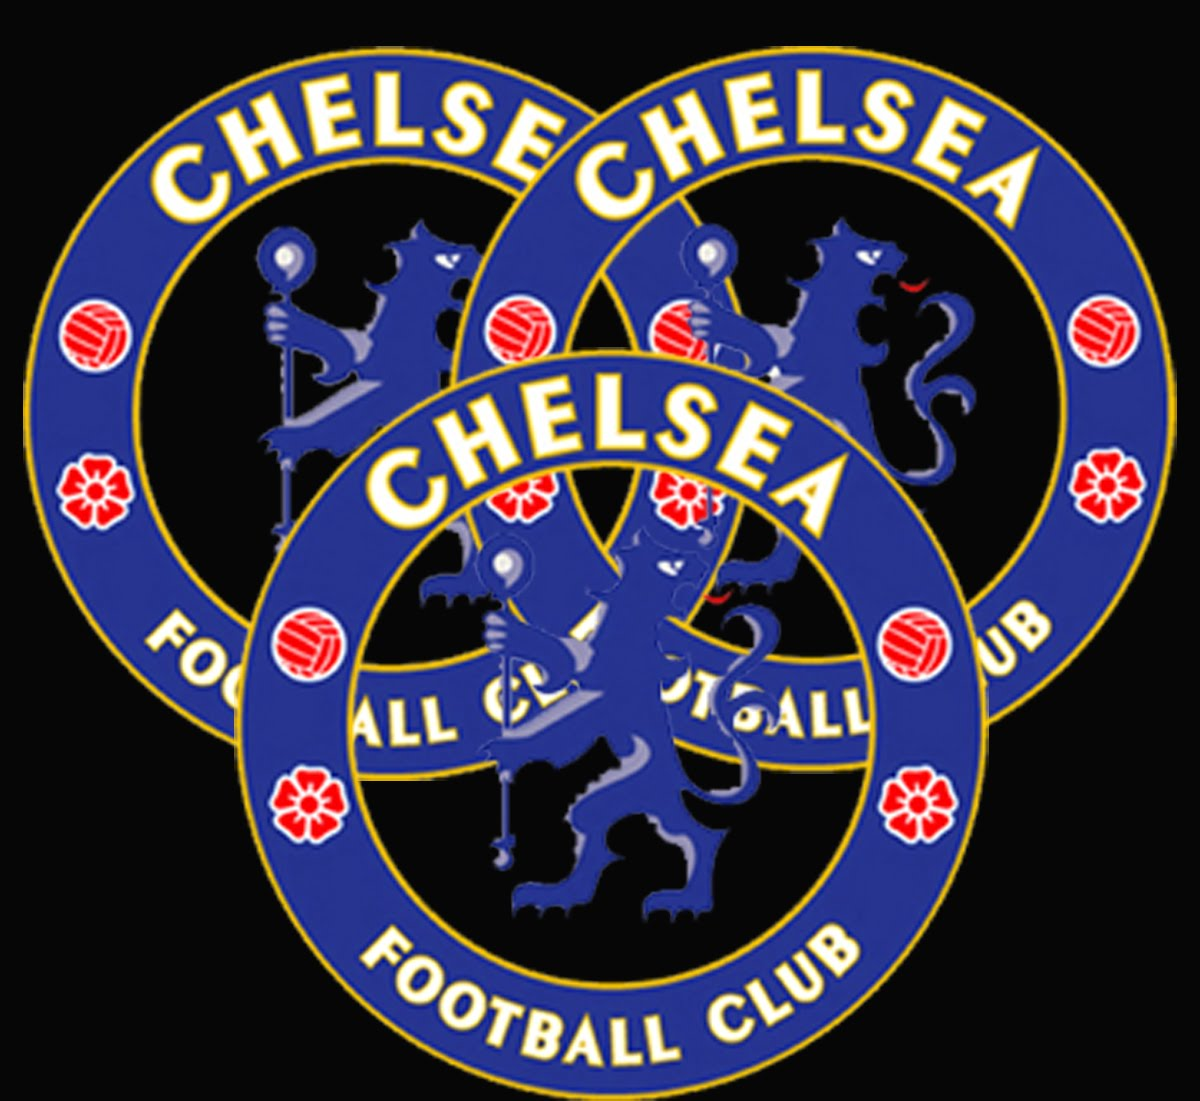 Free Download Chelsea Fc Logo Hd Wallpapers 1200x1101 For Your